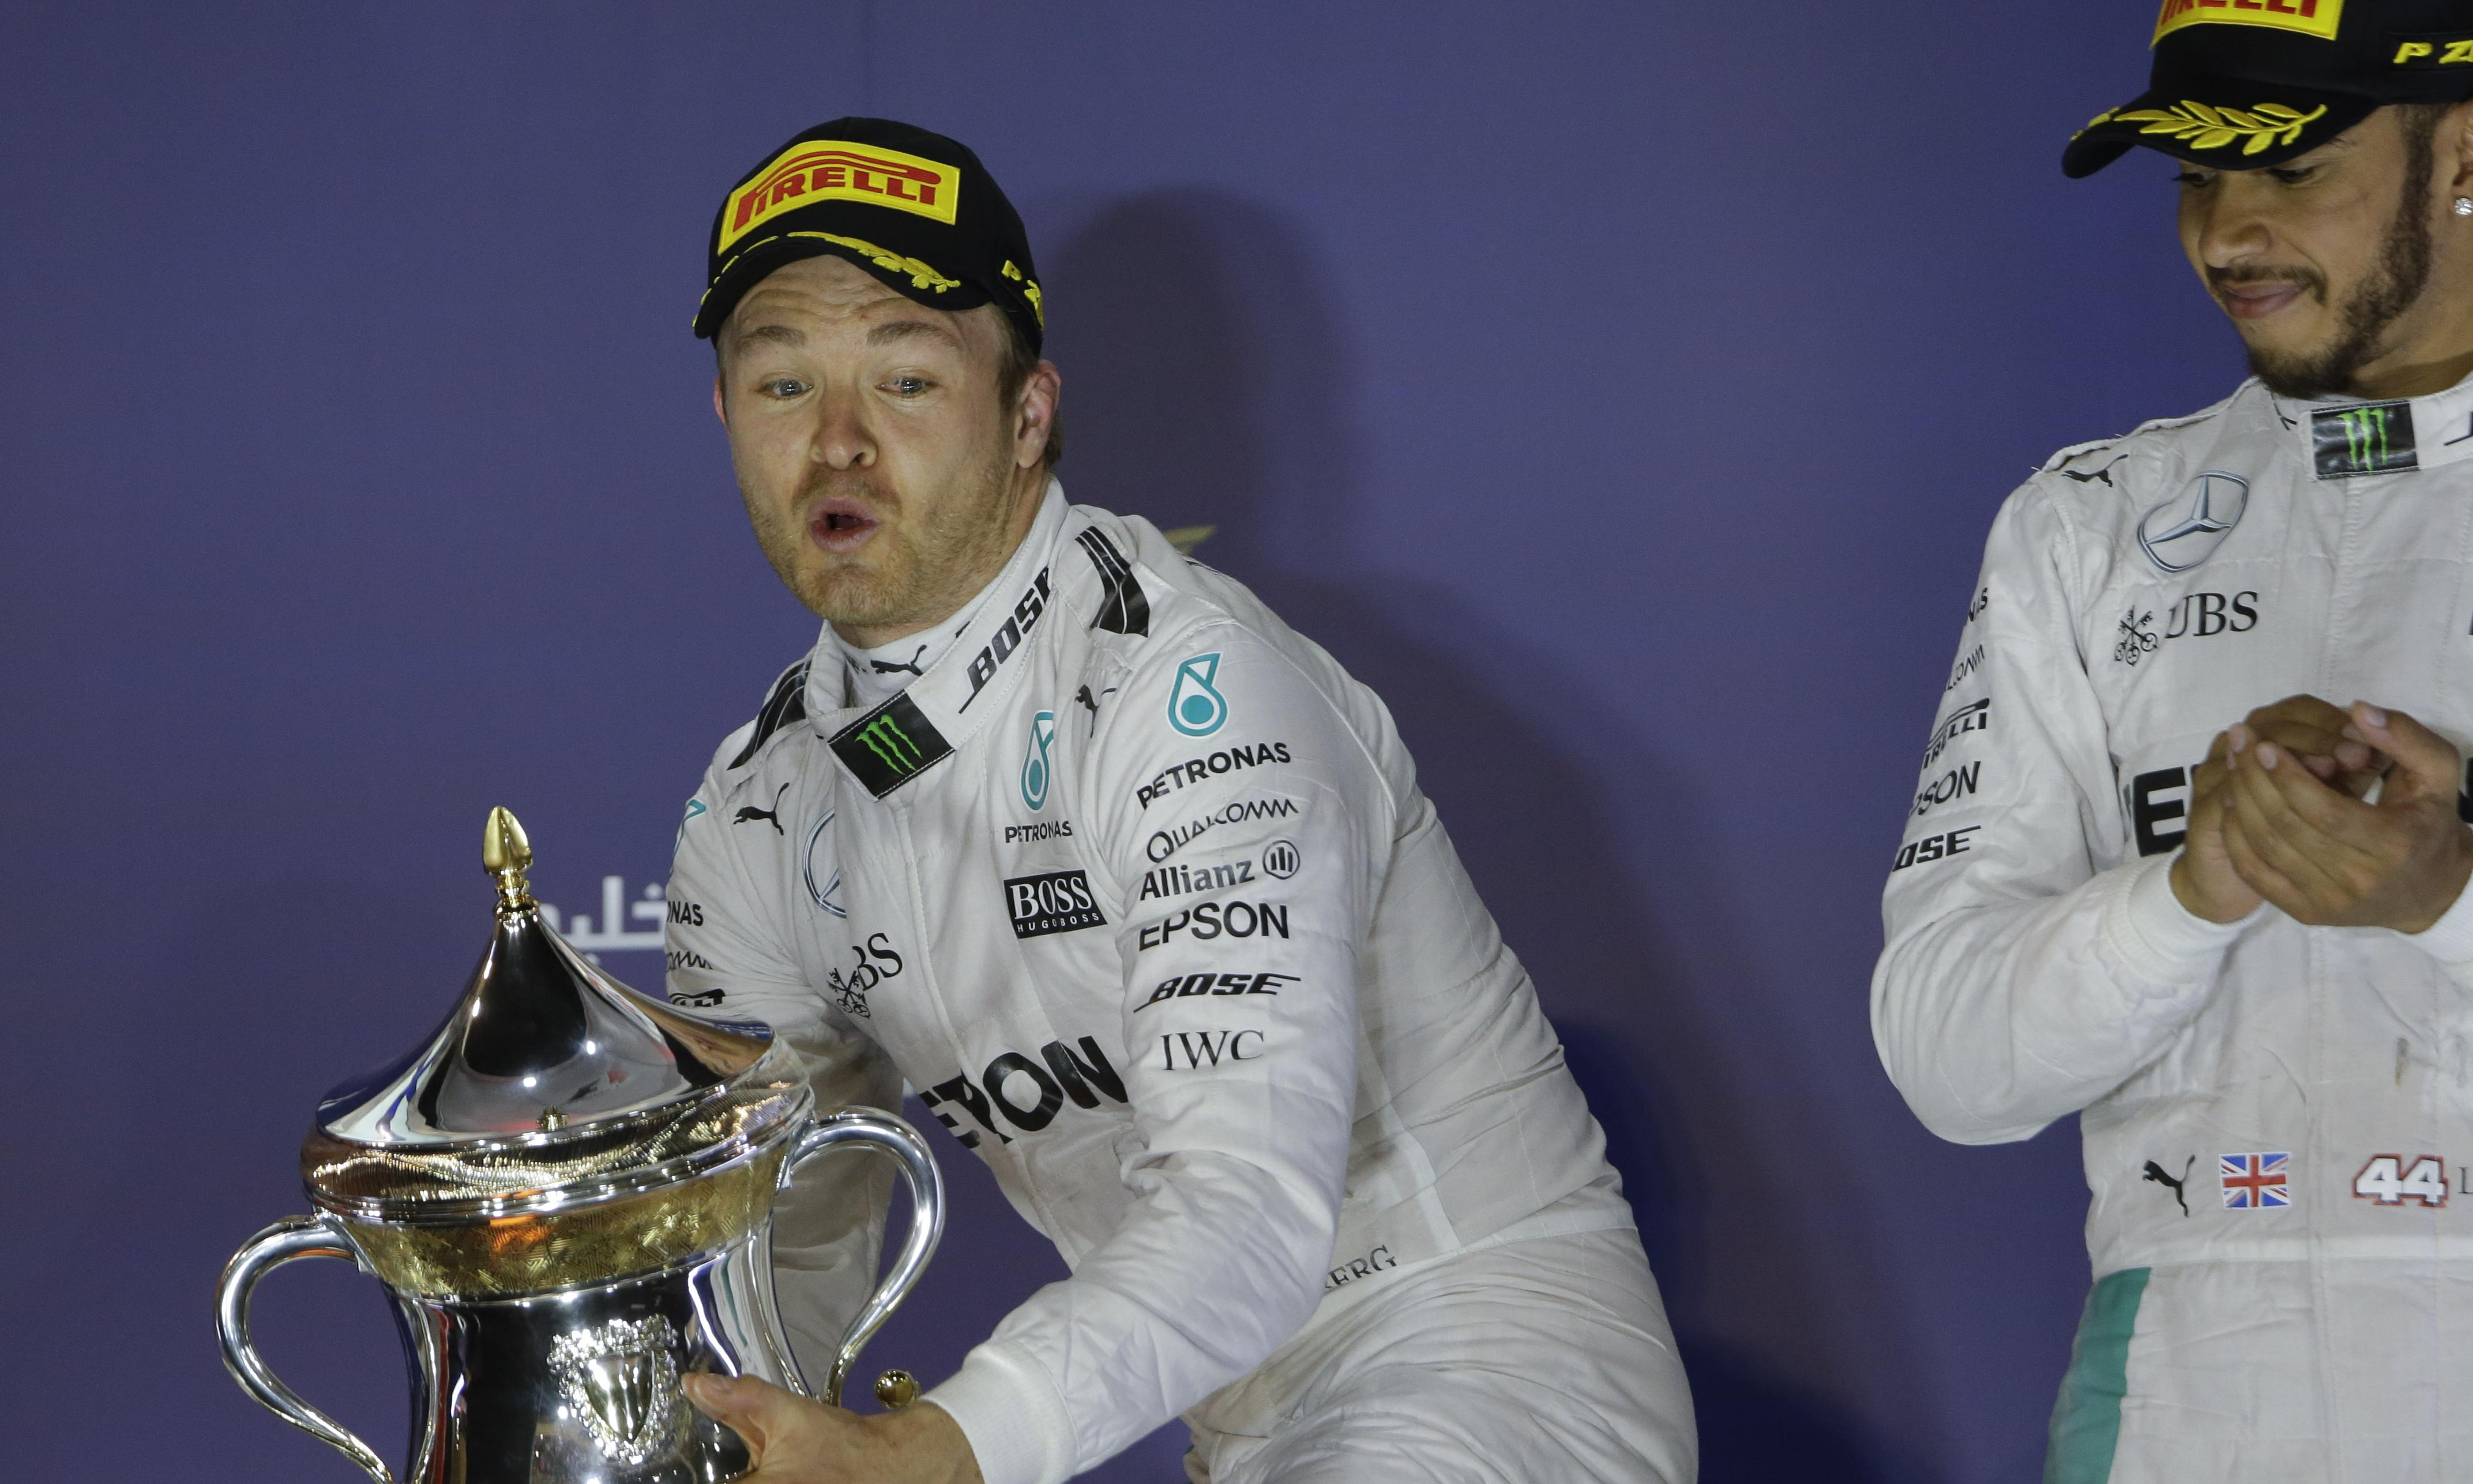 Lewis Hamilton compares F1 battle against Nico Rosberg to Ali's rope-a-dope